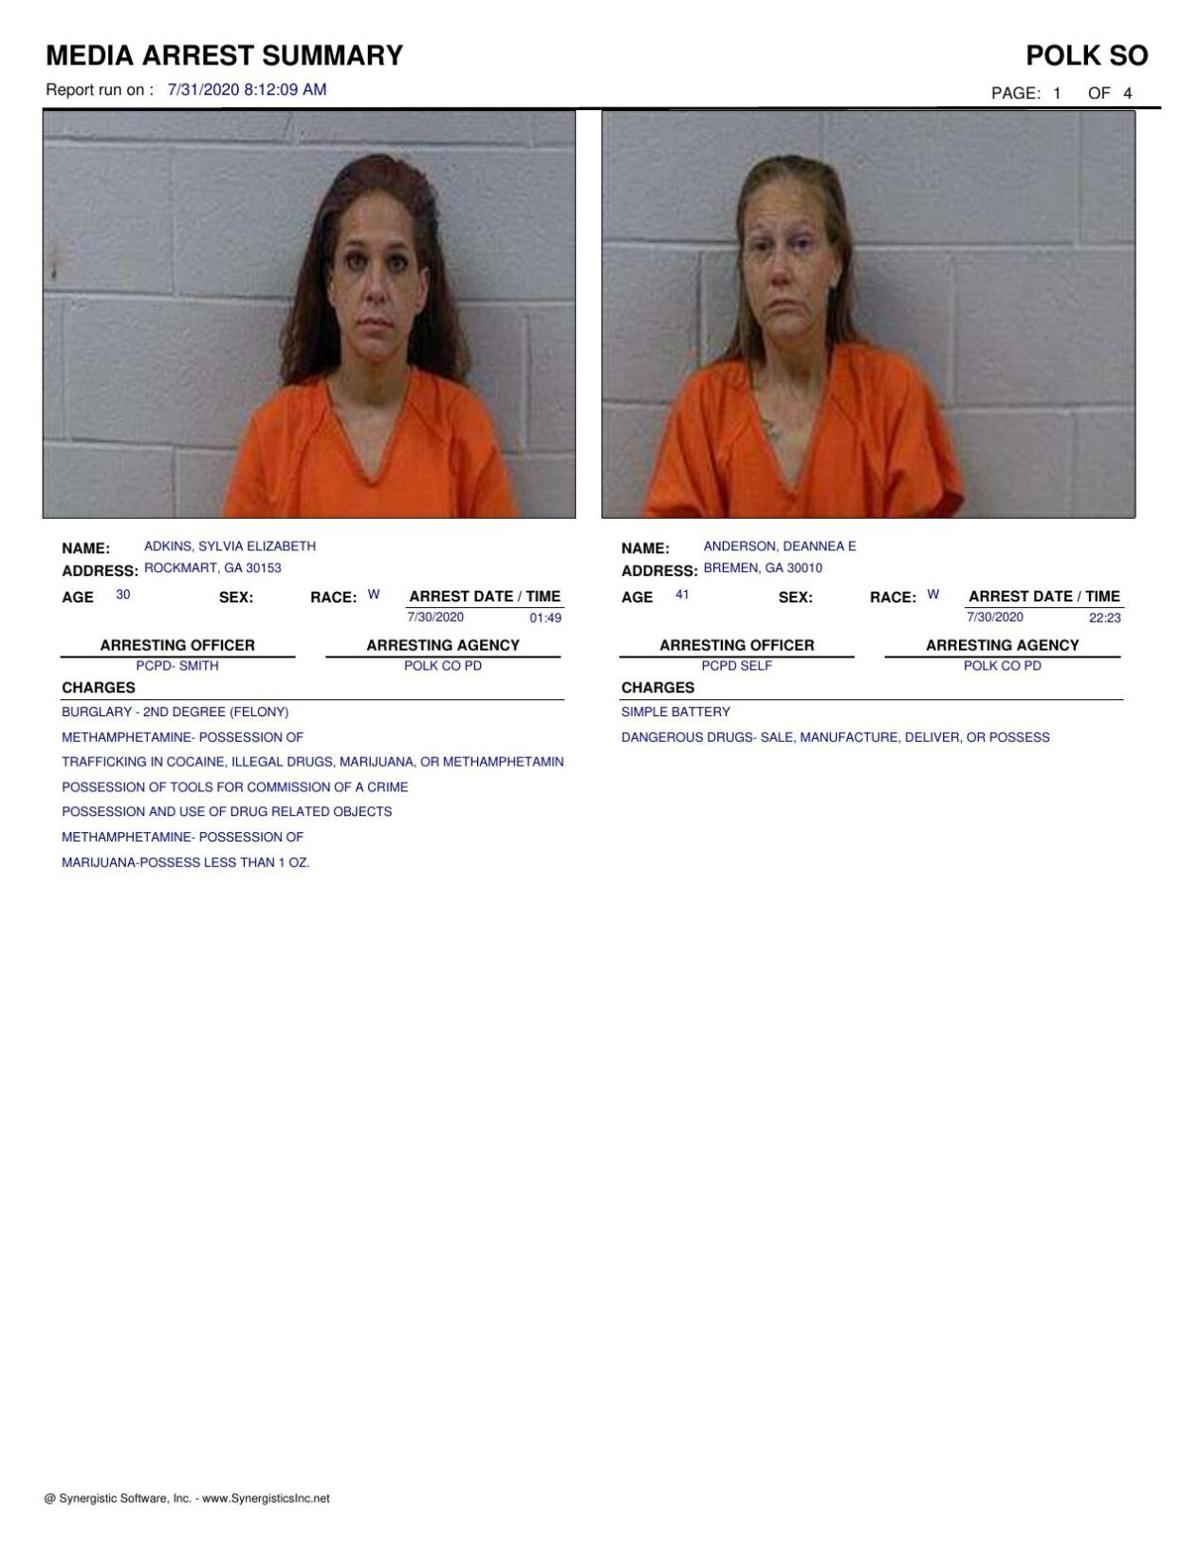 Polk County Jail Report for Friday, July 31